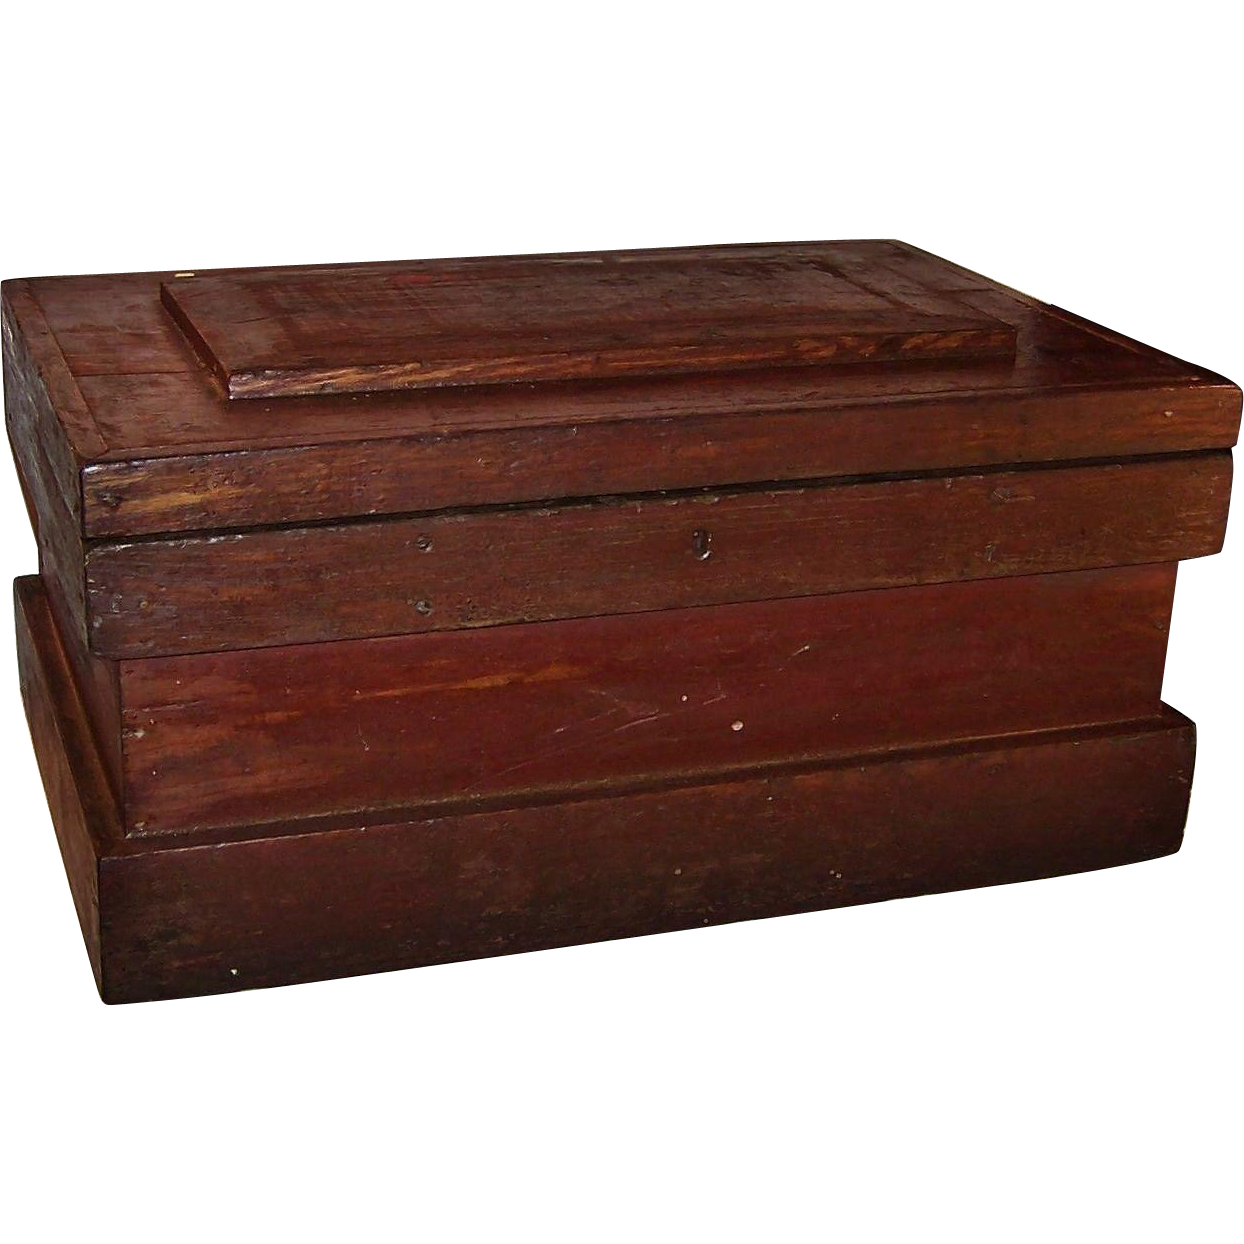 Large Vintage Wooden Tool Chest Storage Box From